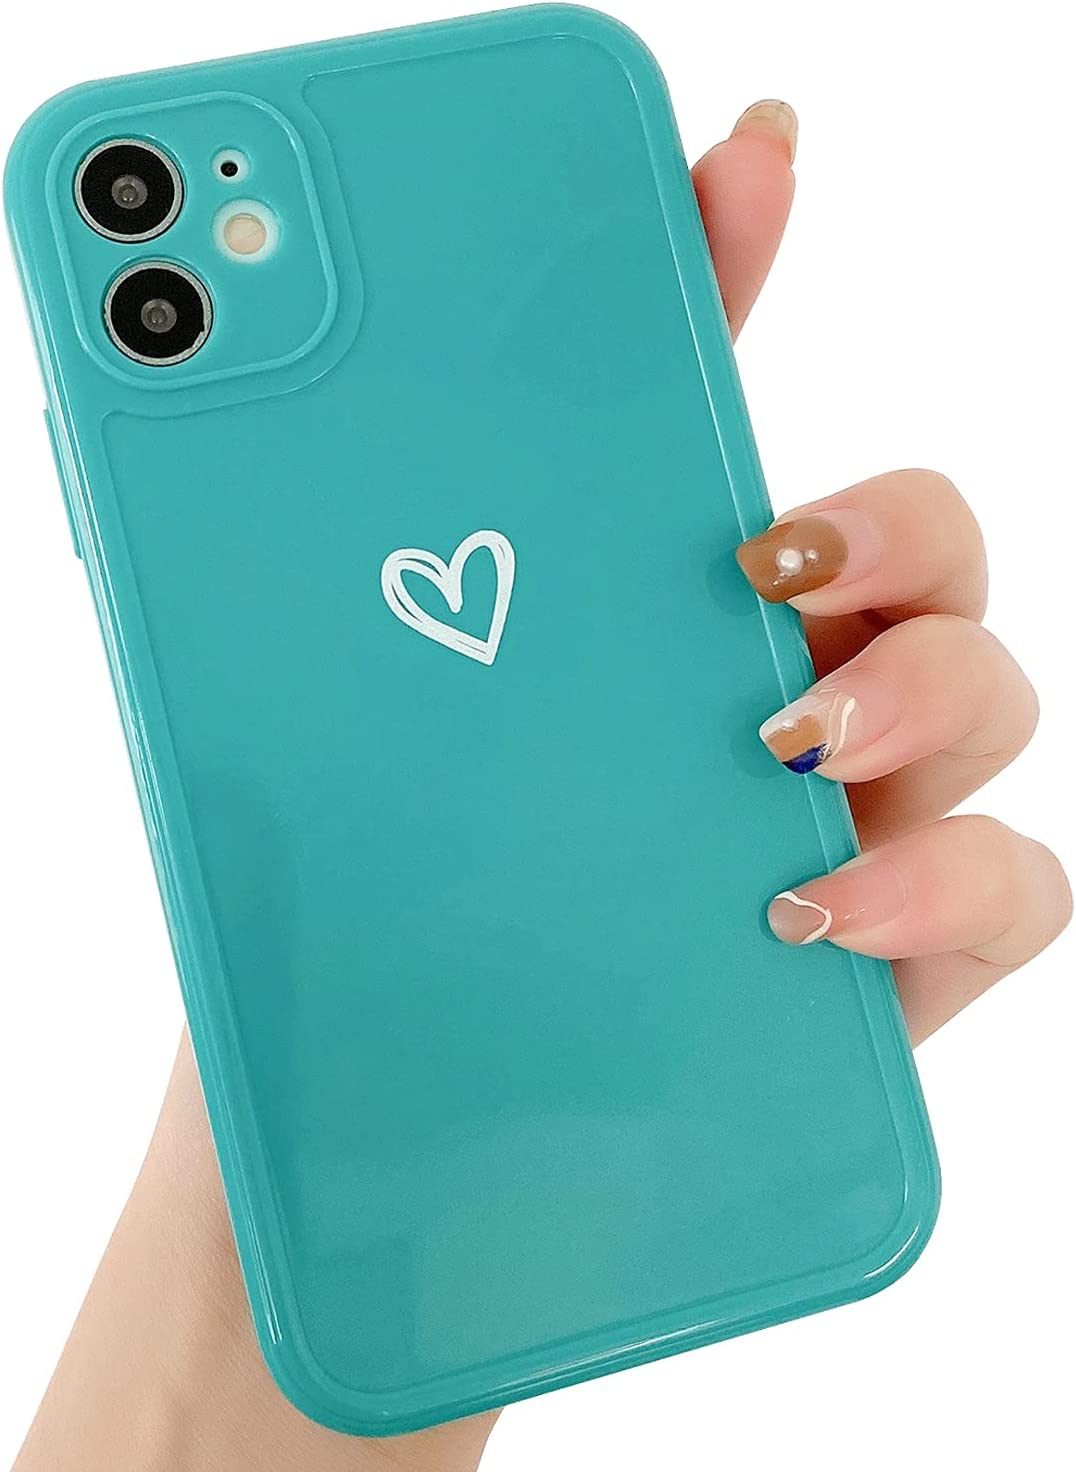 """Compatible with iPhone 11 Case for Women Girls, Cute Love Heart Pattern Soft Slim TPU Protective Bumper Phone Case for iPhone 11 6.1""""-Green"""